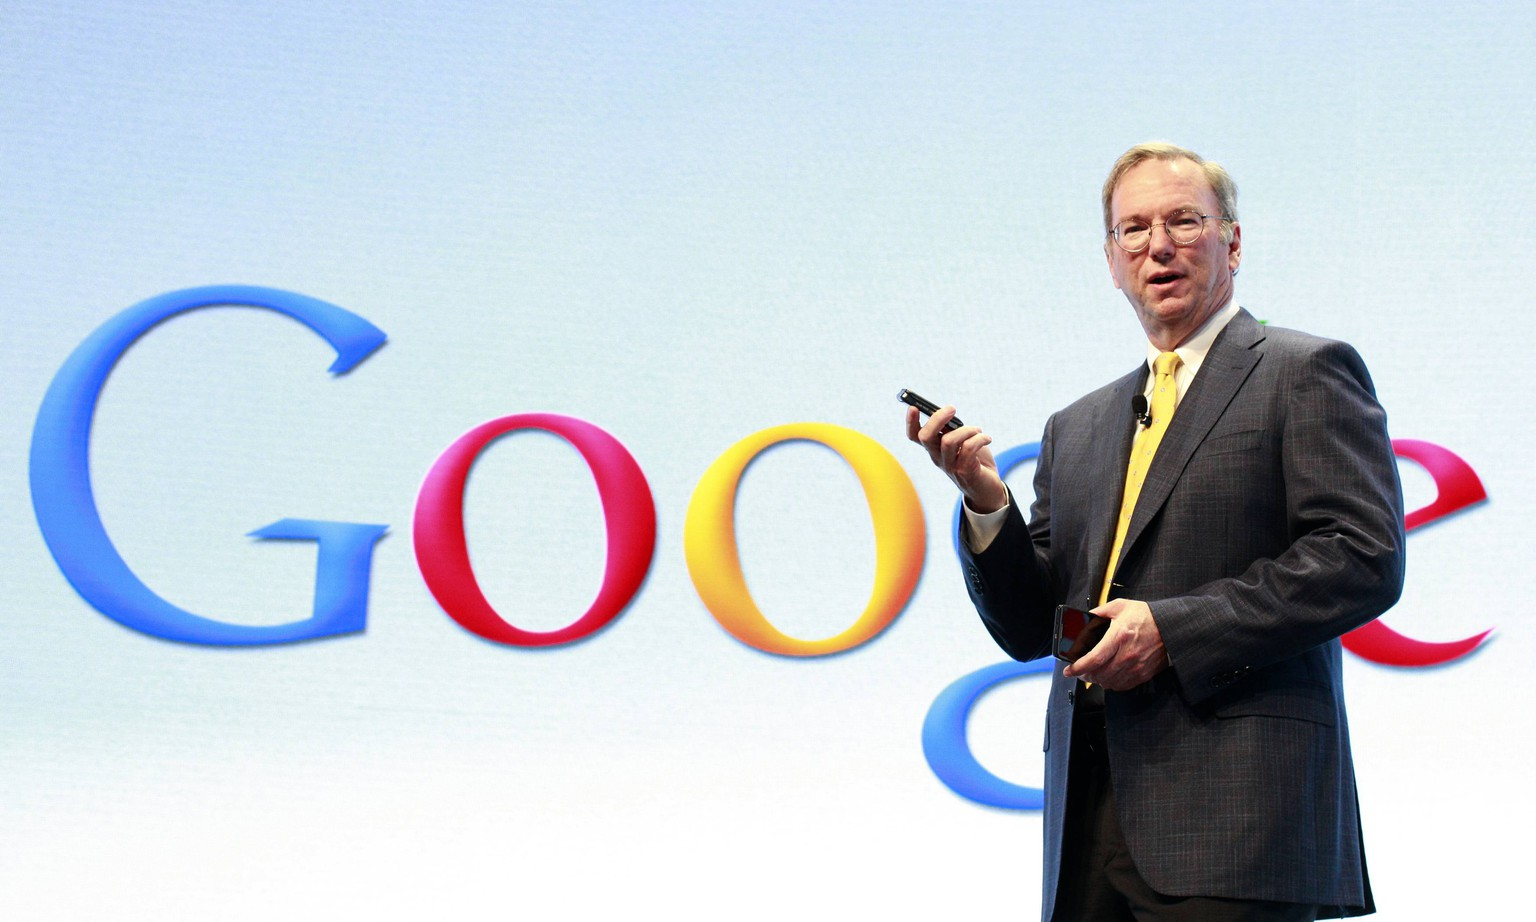 Google Chairman Eric Schmidt speaks at a Motorola phone launch event in New York, in this file photo taken September 5, 2012.  European regulators are preparing what could be a stern challenge to Google Inc's mobile software business in the coming months after a nearly four-year investigation into the company's Web search practices left rivals and European politicians dissatisfied.  REUTERS/Brendan McDermid/Files (UNITED STATES - Tags: BUSINESS TELECOMS SCIENCE TECHNOLOGY)